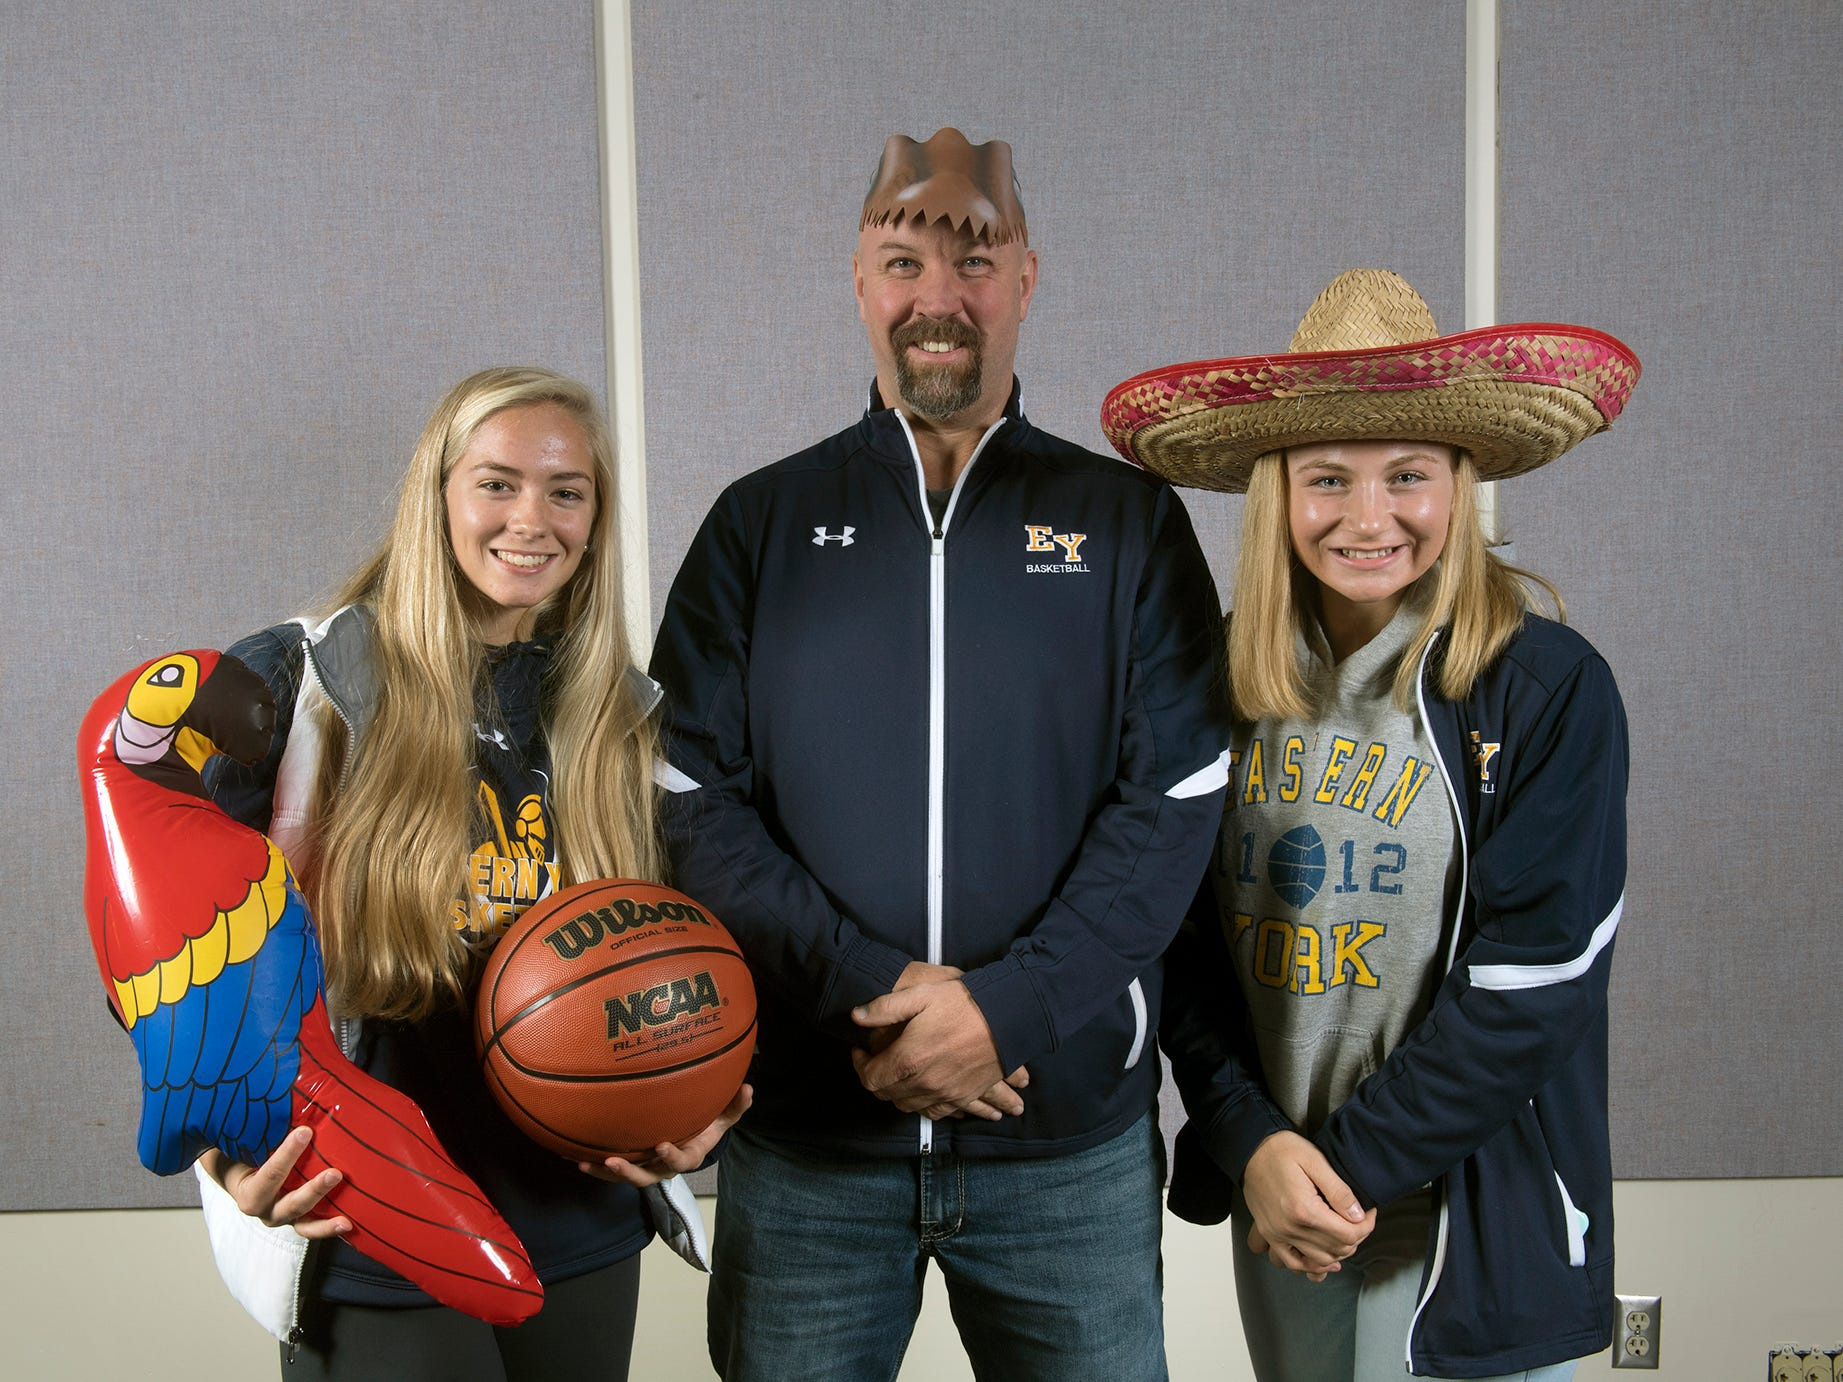 From the left, Addison Malone, Coach Brad Weaver, and Cassidy Arnold, with the Eastern York Sr. High School basketball team, pose during the 2018-19 GameTimePa YAIAA Winter Media Day Sunday November 11, 2018.